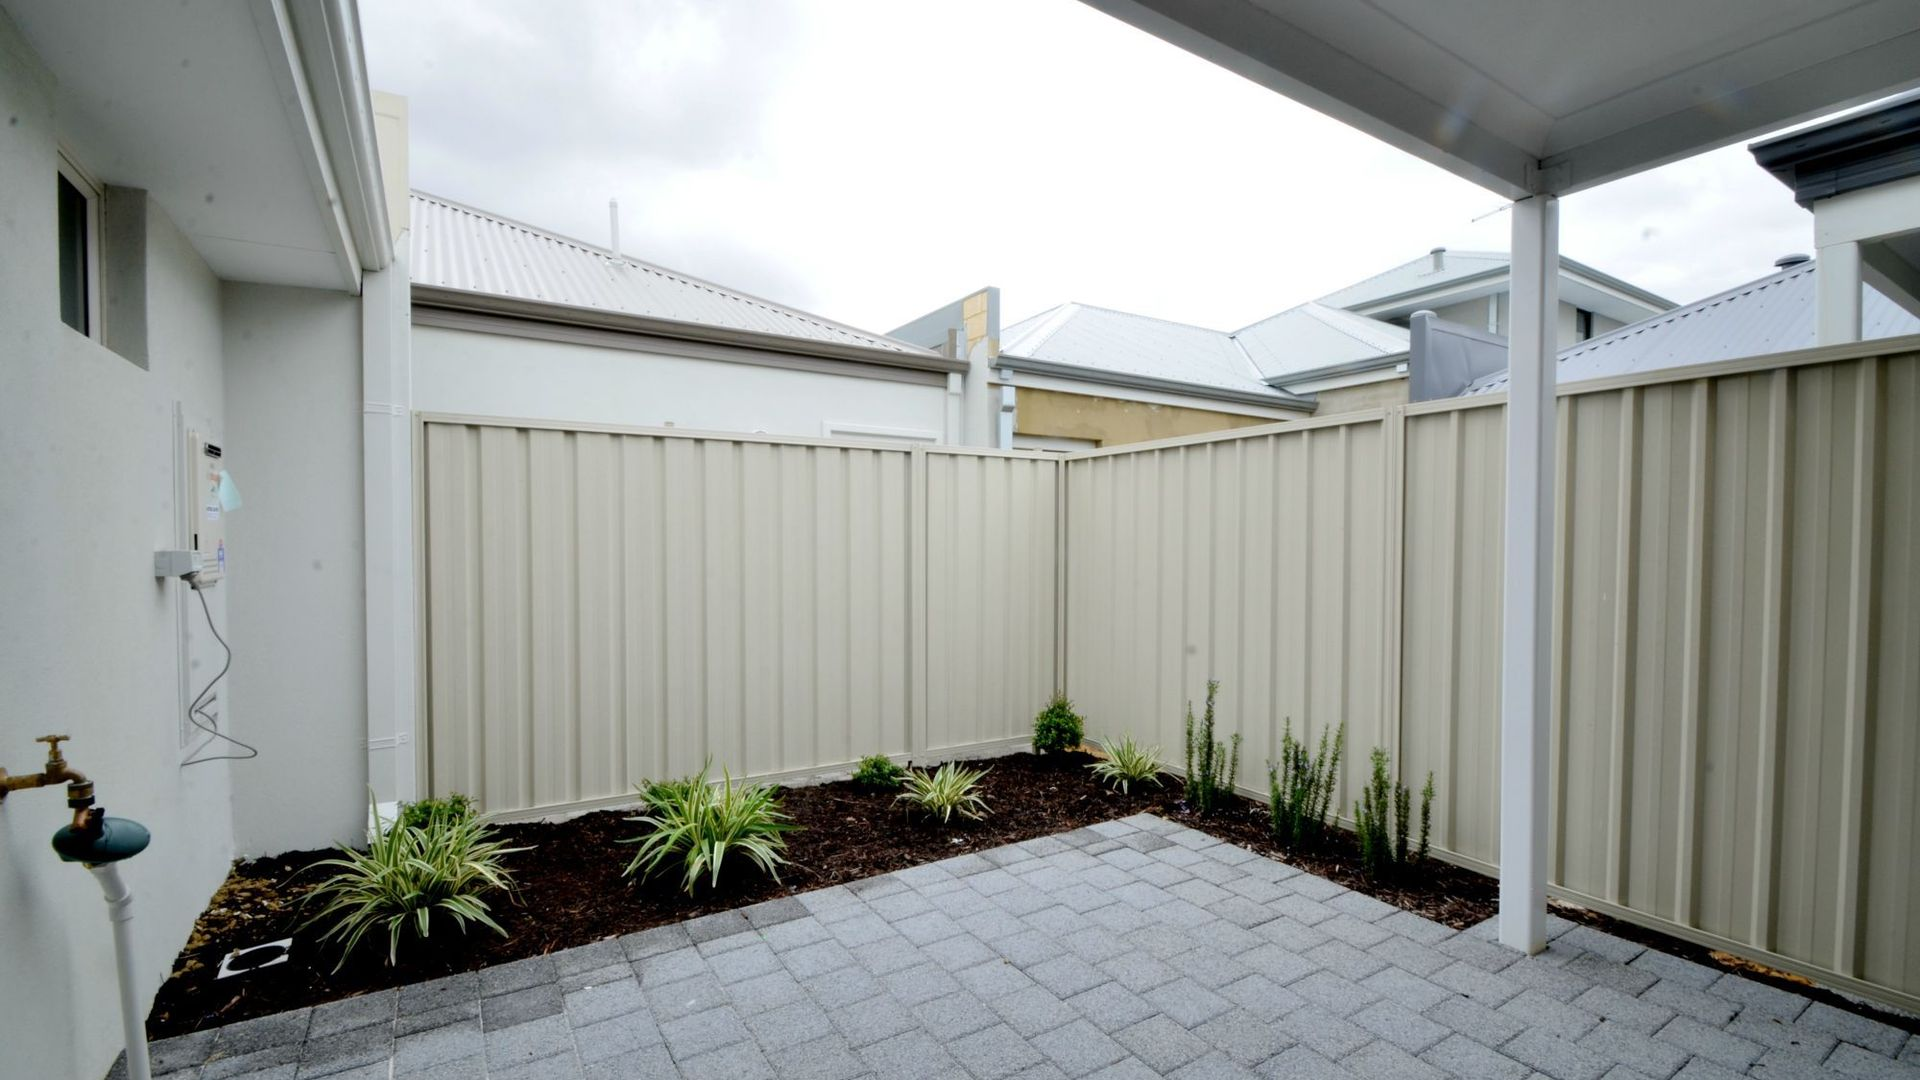 3/18 Gowrie Approach St, Canning Vale WA 6155, Image 2